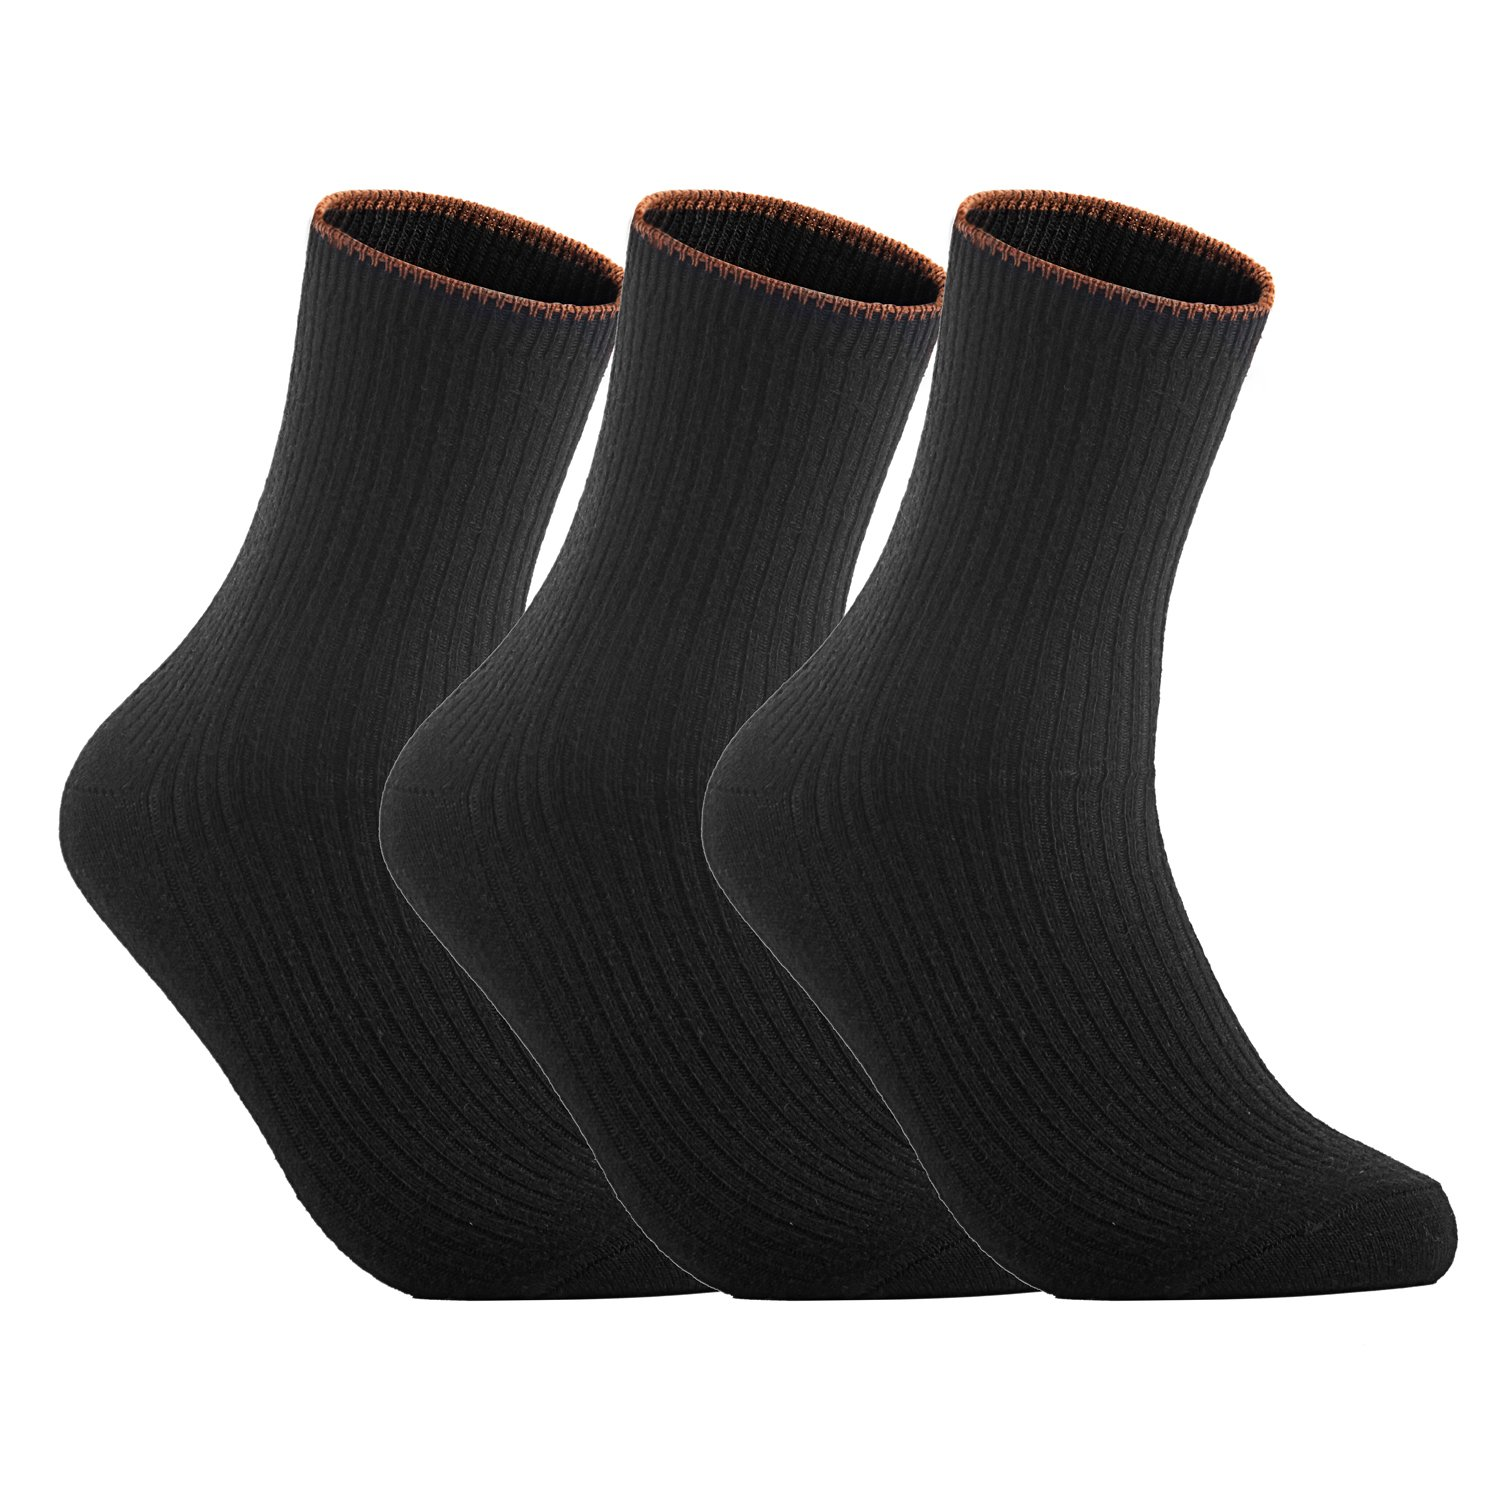 Lian LifeStyle Women's 3 Pairs Cashmere Wool Socks Casual Size 6-9(Black)